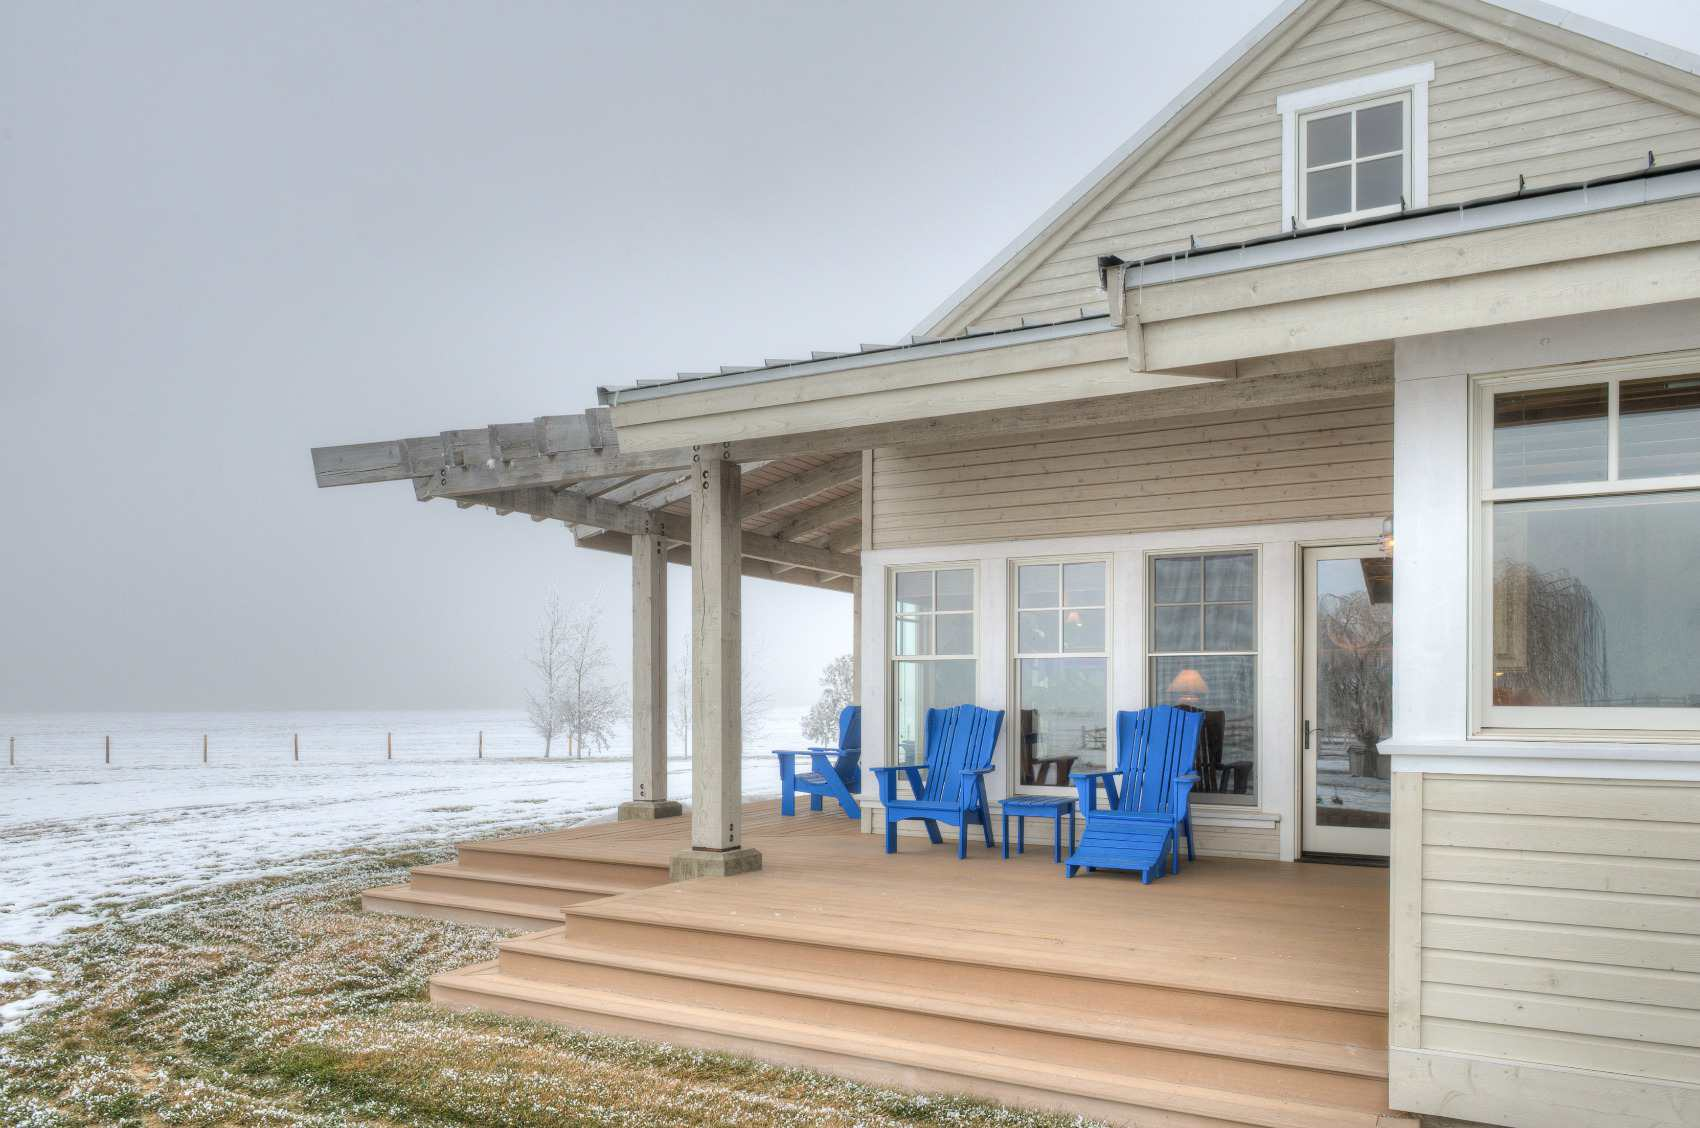 Covered deck attached to house with blue chairs